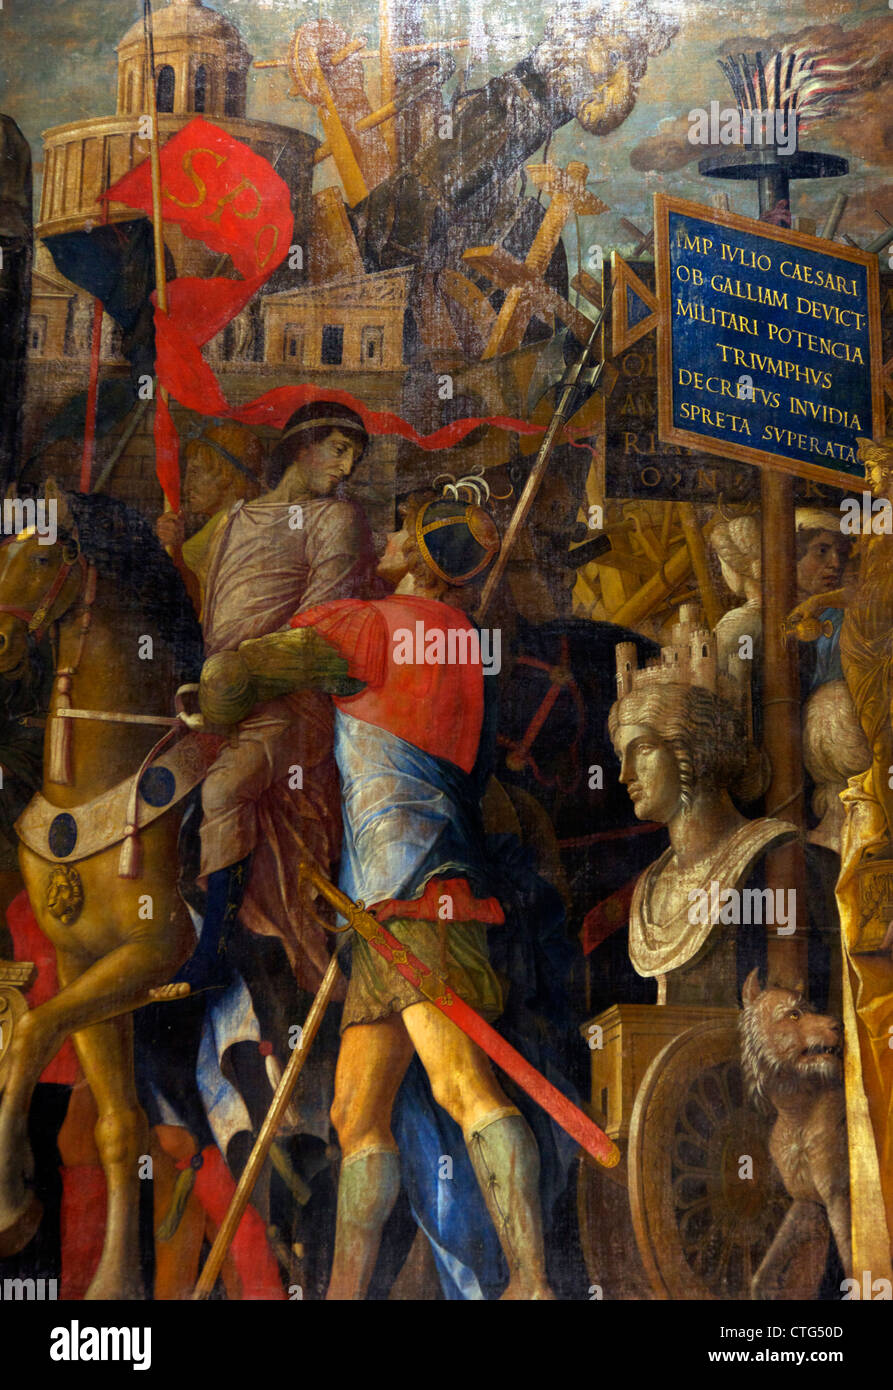 Detail from Triumphal Carts, from the Triumphs of Caesar, by Andrea Mantegna, - Stock Image